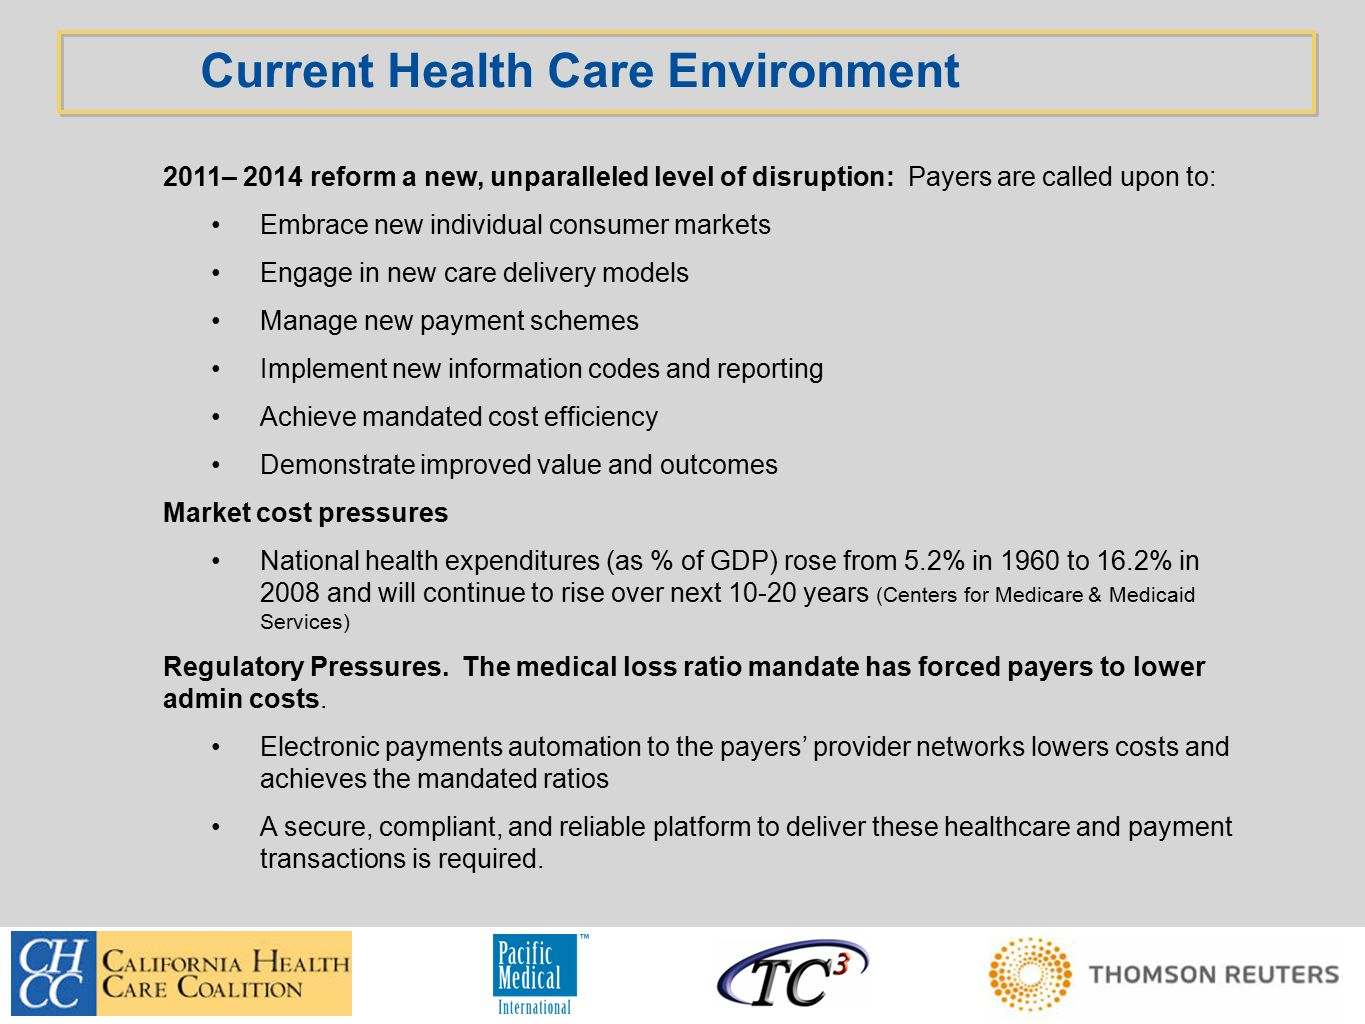 Consumer emergence.42 million people will purchase healthcare ins/services by 2016.